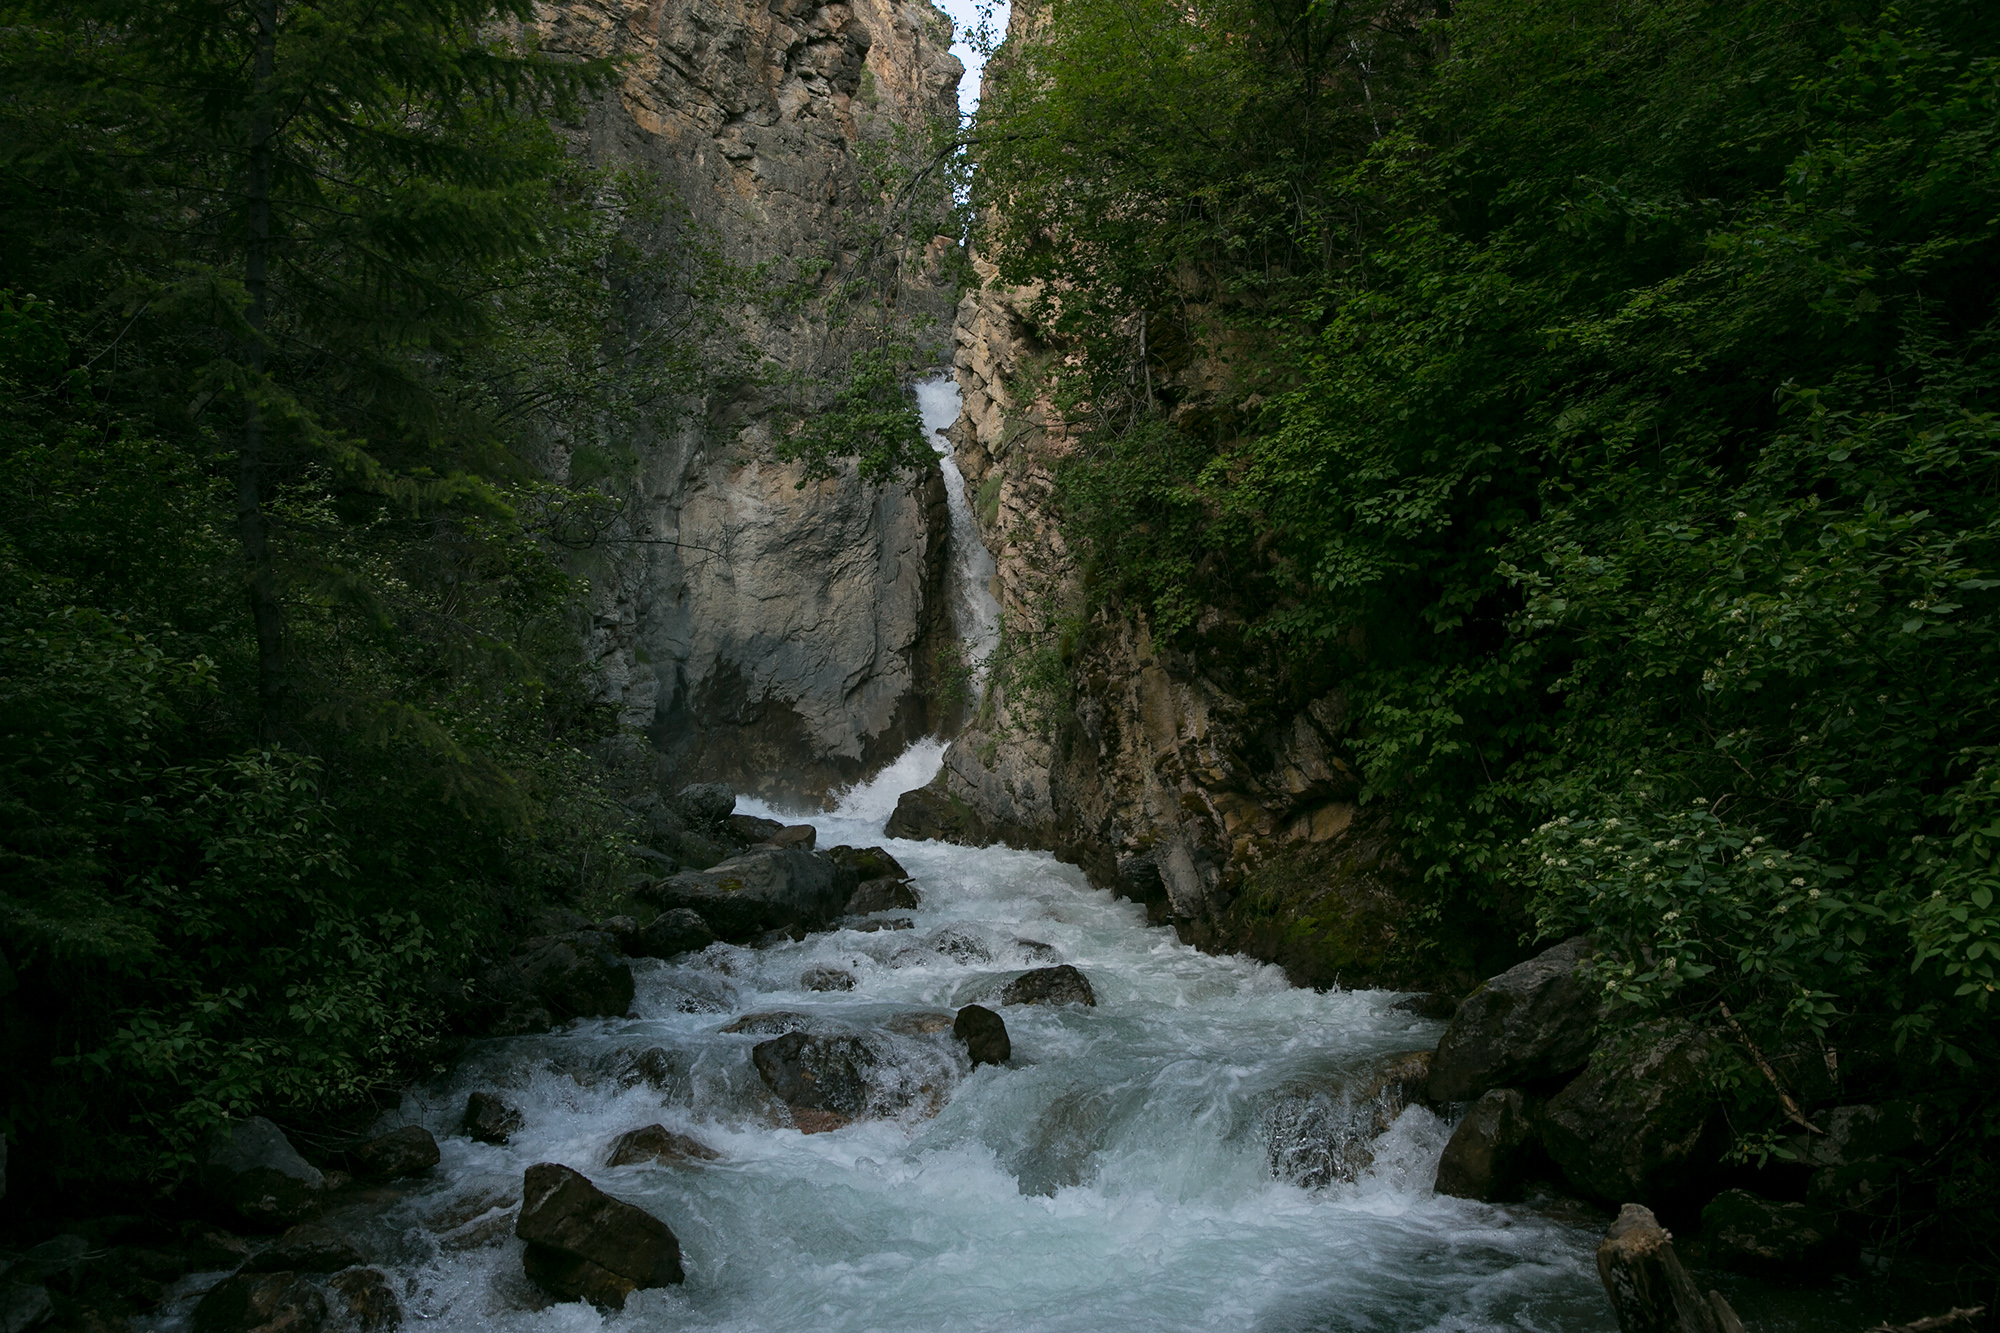 The waterfall in Sinclair Canyon in Kootenay National Park just outside Radium Hot Springs.